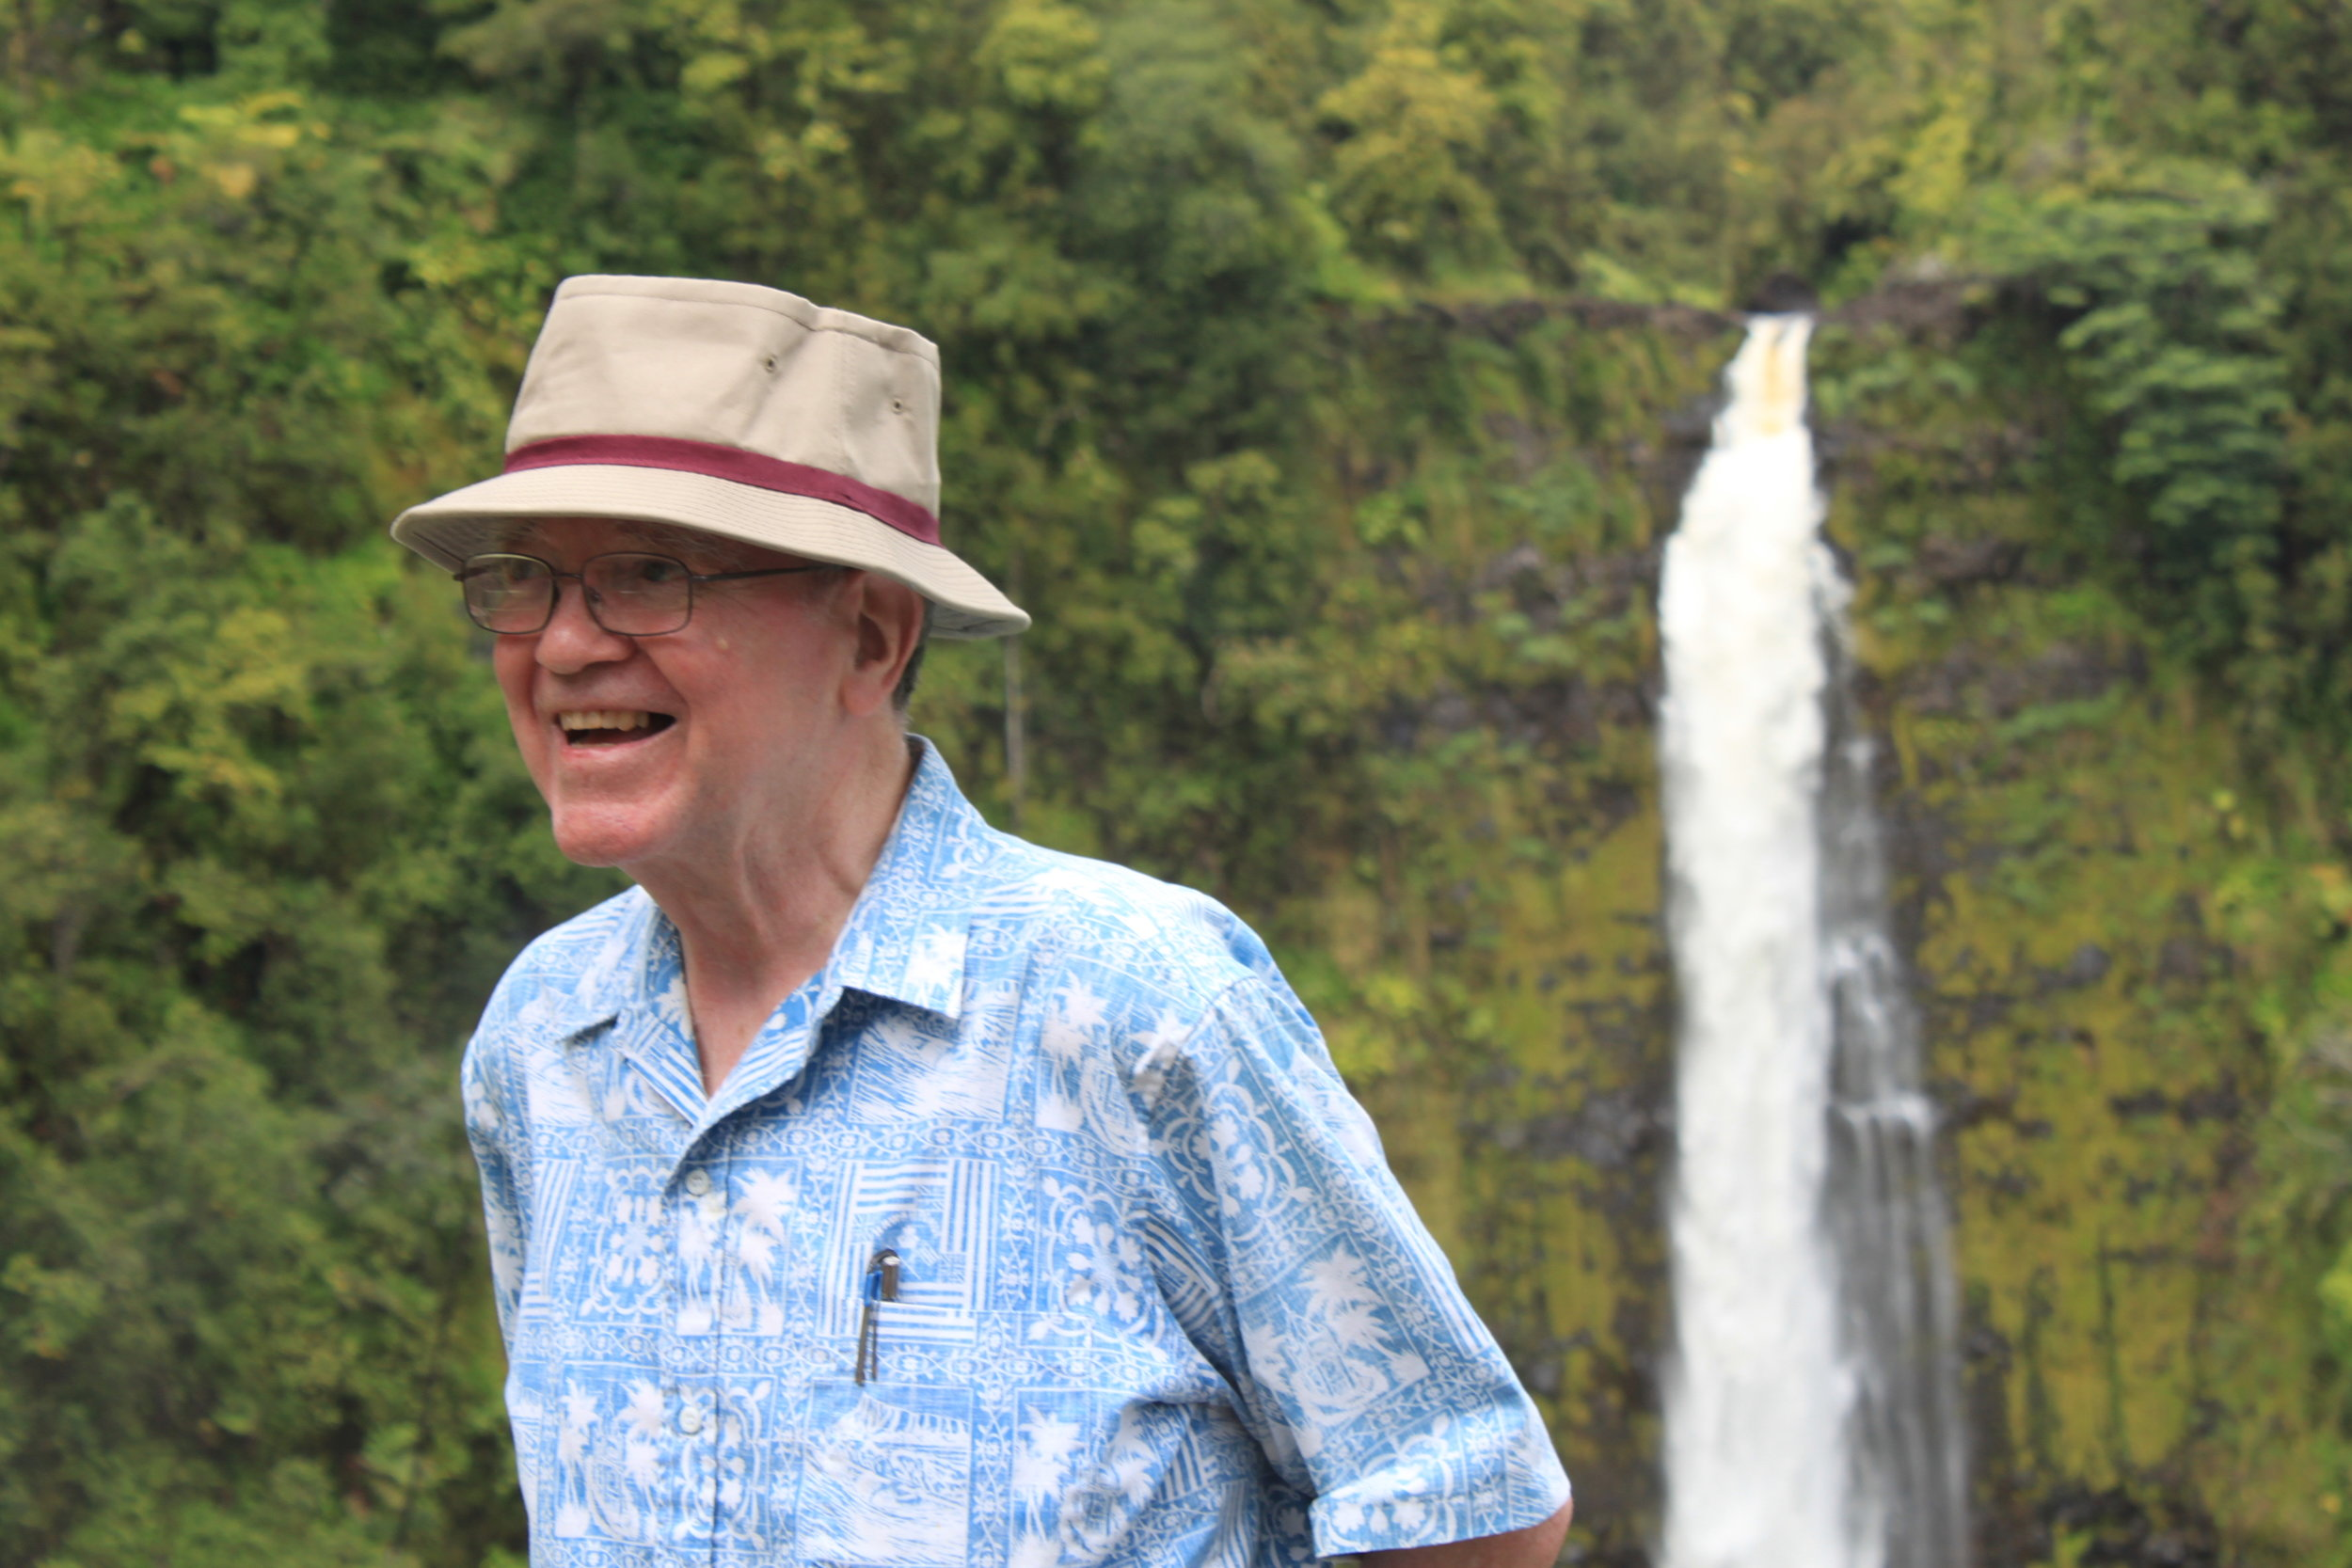 My father, Leo, enjoying time with family in Hawaii.